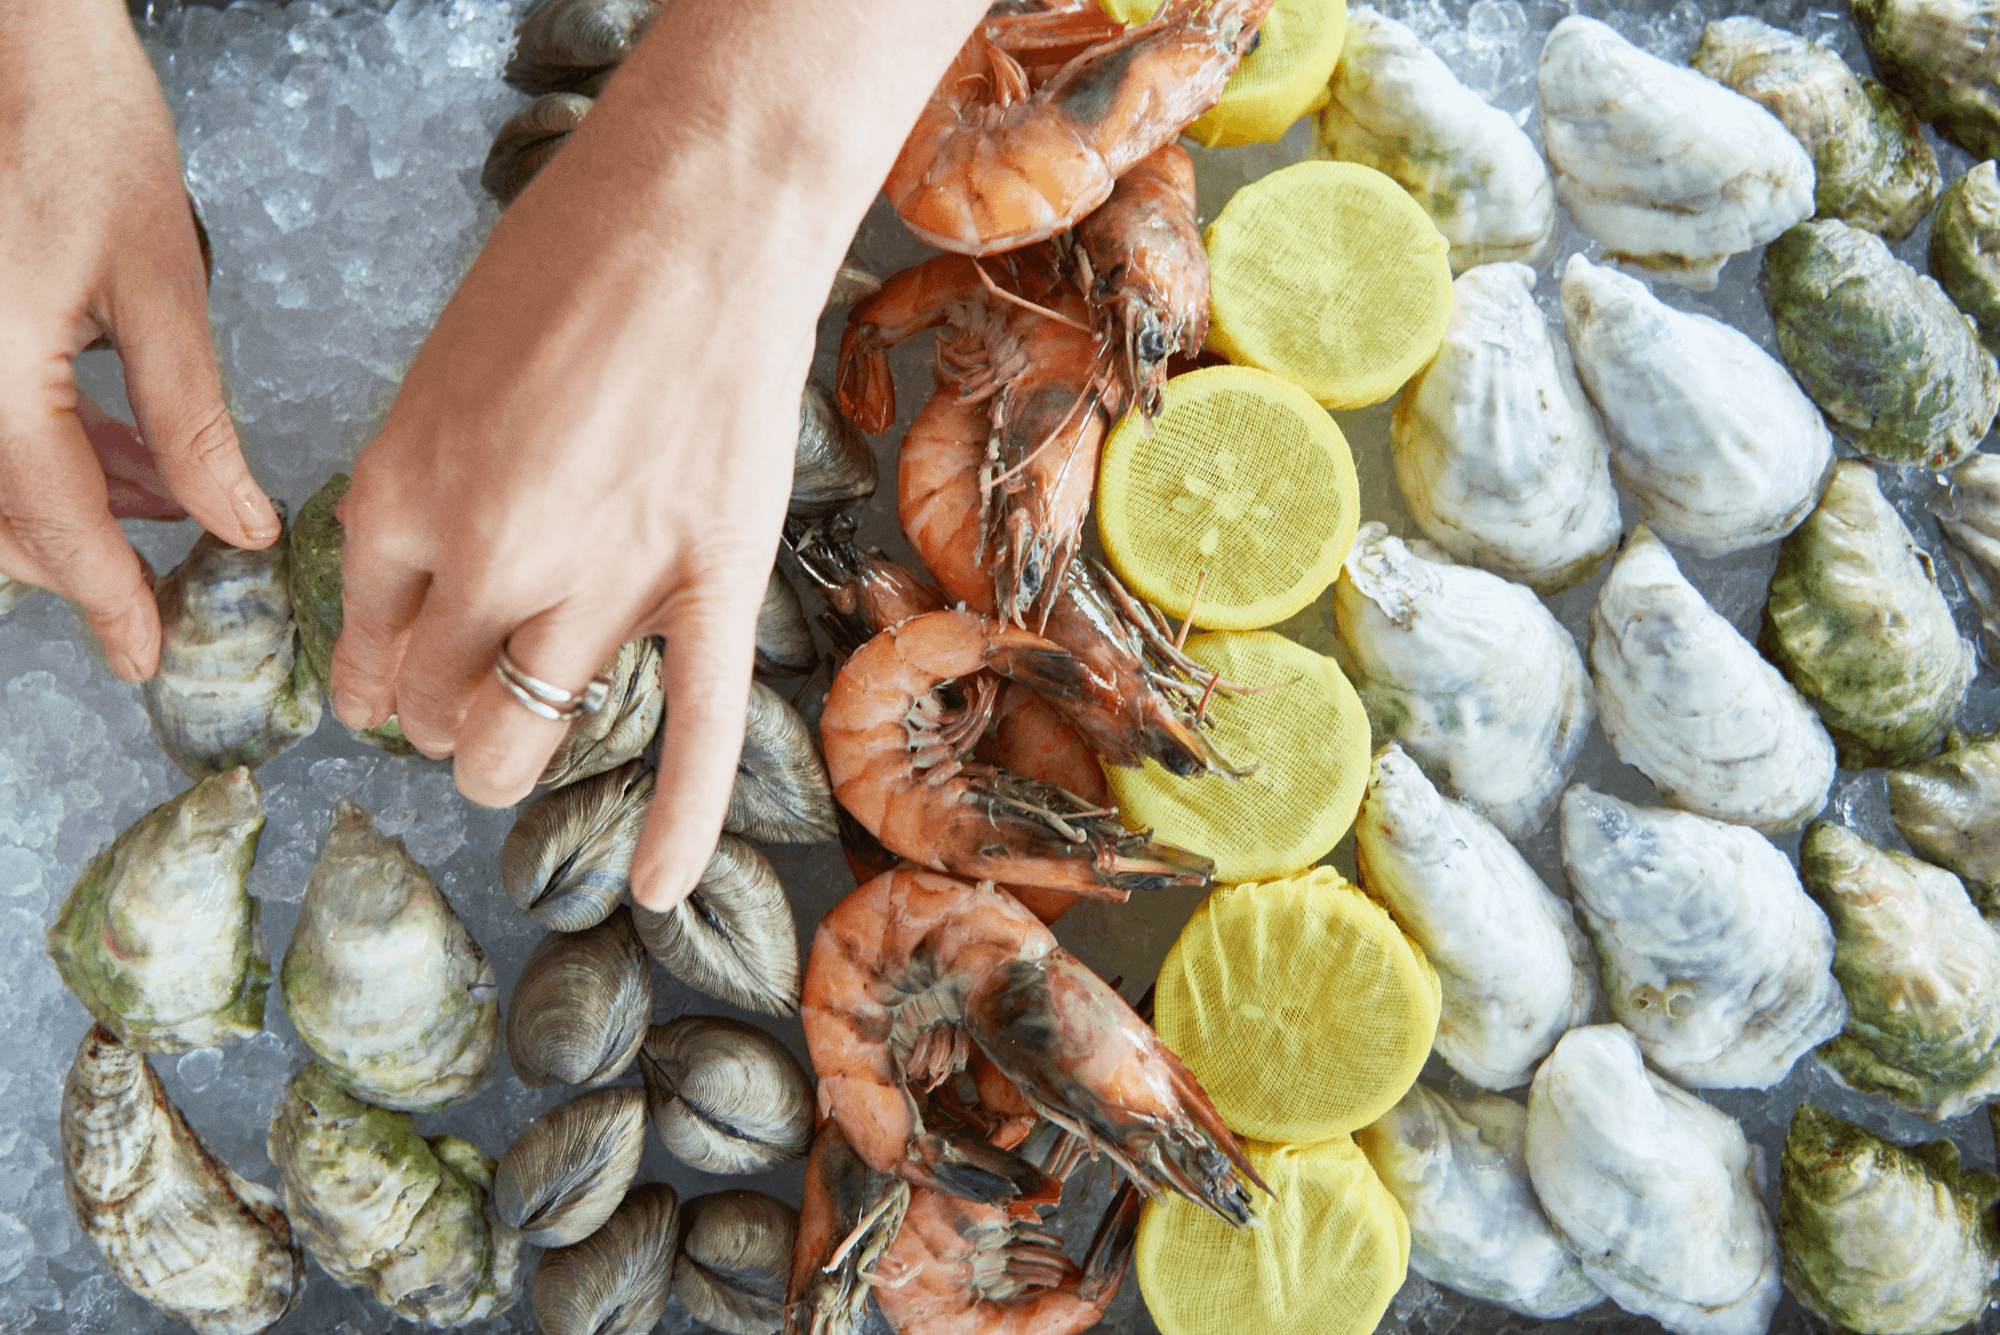 Hands arranging shellfish on ice.